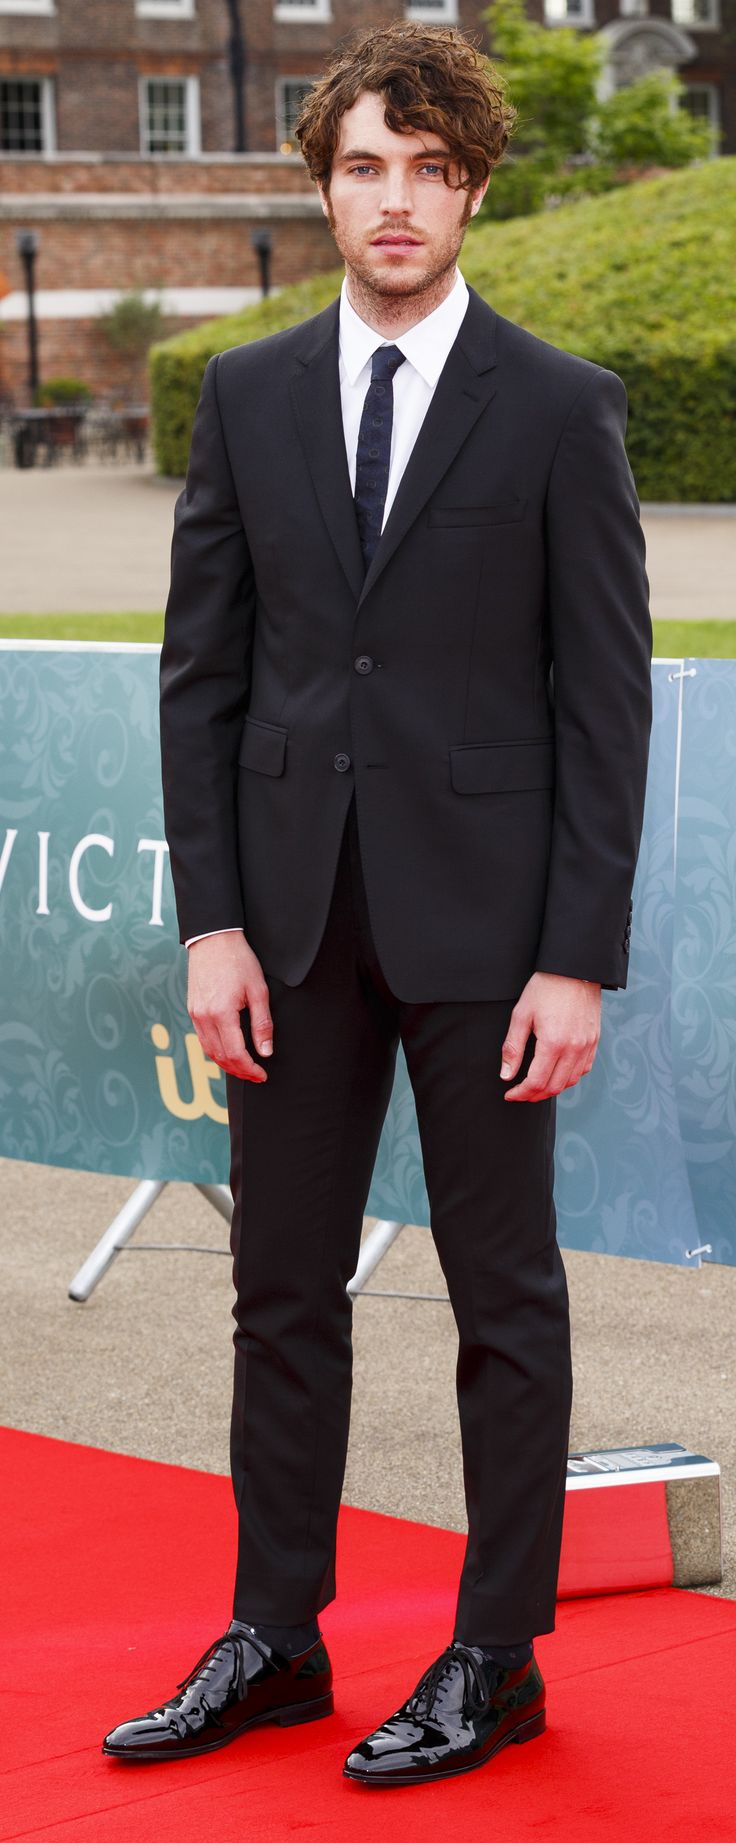 British actor Tom Hughes wearing Burberry tailoring to the premiere of Victoria in London's Kensington Palace